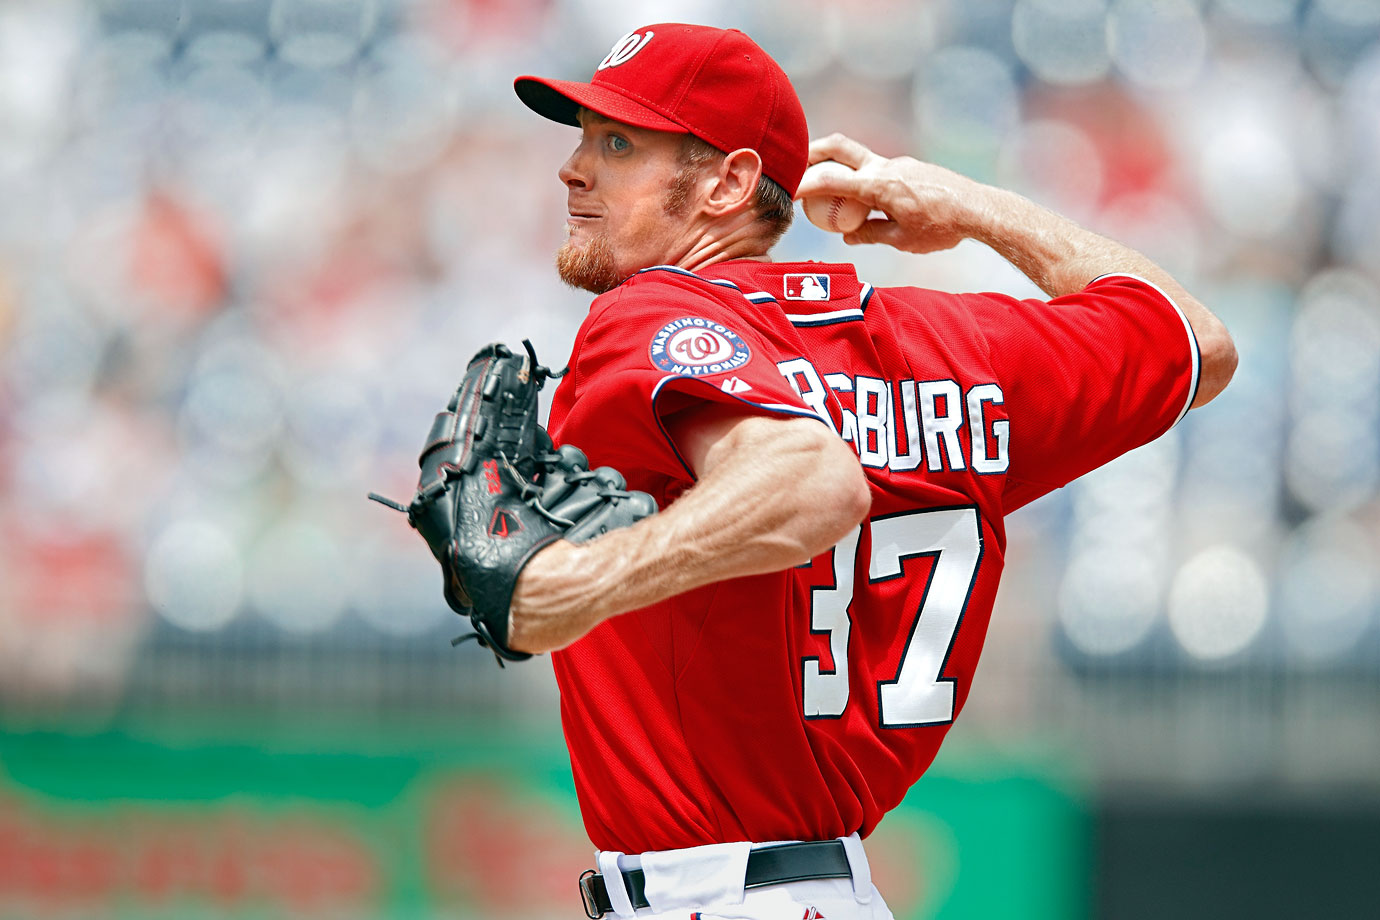 Flame-throwing prodigy Stephen Strasburg lived up to his billing in 2010. In 12 major league starts, the No. 1 overall pick in the 2009 draft had a 2.91 ERA and tallied 92 strikeouts in only 68 innings. But in a start in late August against the Phillies, Strasburg was abruptly removed with a serious elbow injury that required Tommy John surgery in September. He sat out nearly the entire 2011 season before returning strong, finishing 15-6 but somewhat controversially shut down before Washington's appearance in the 2012 postseason. Stras fanned 242 batters in 2014.